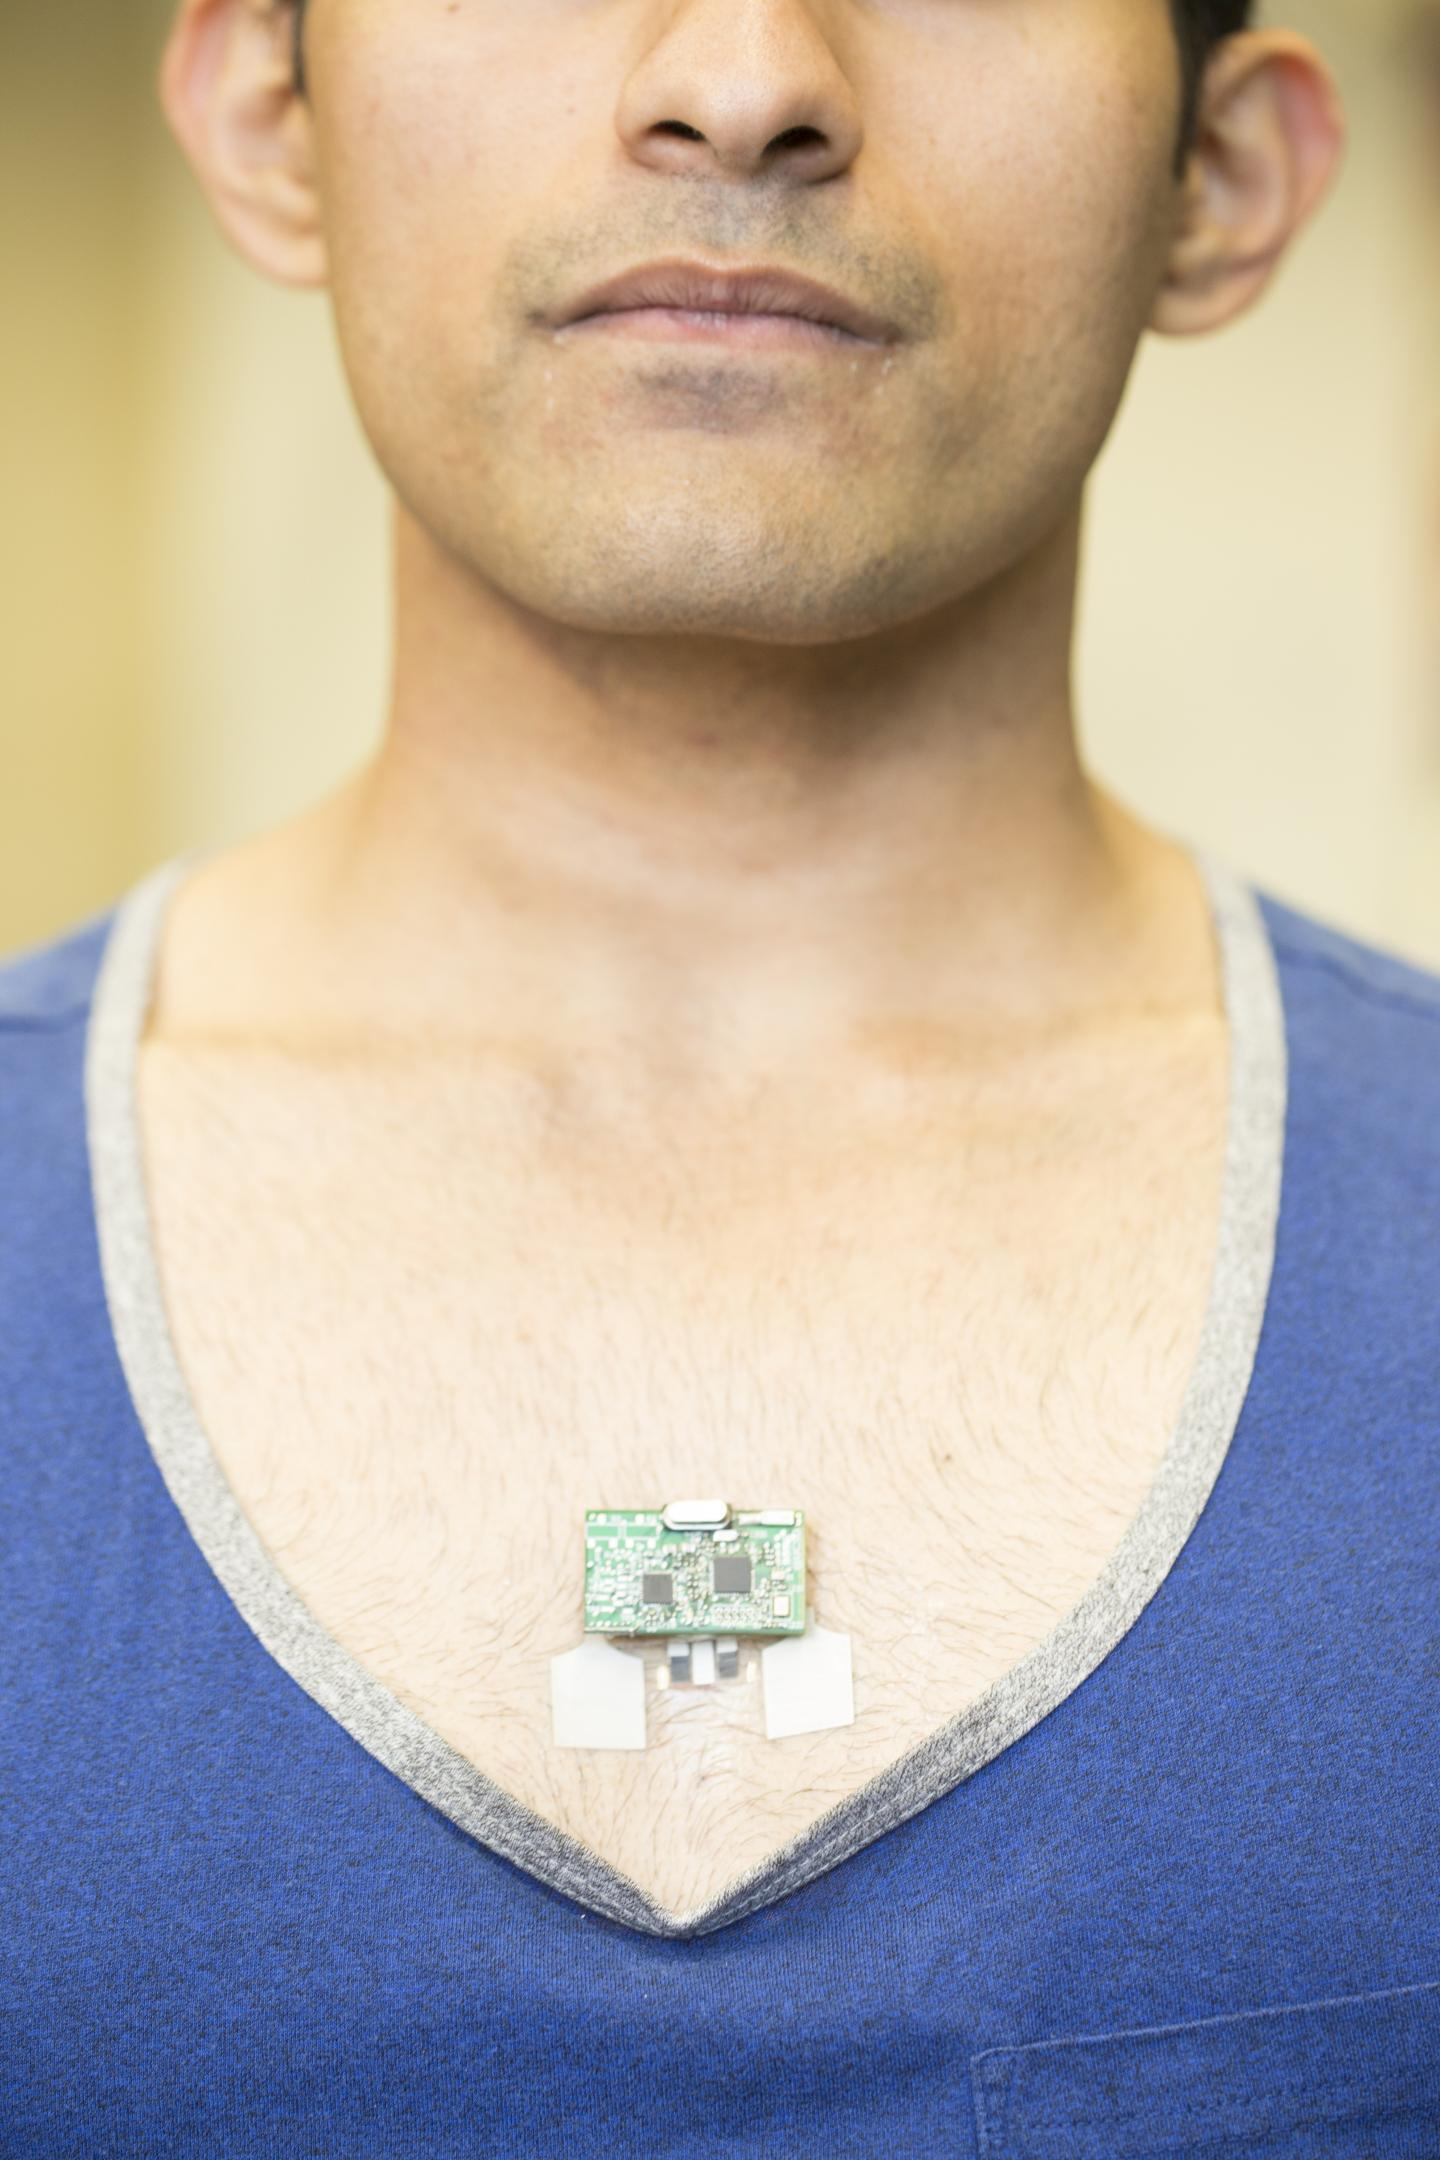 ChemPhys Patch Worn on the Chest